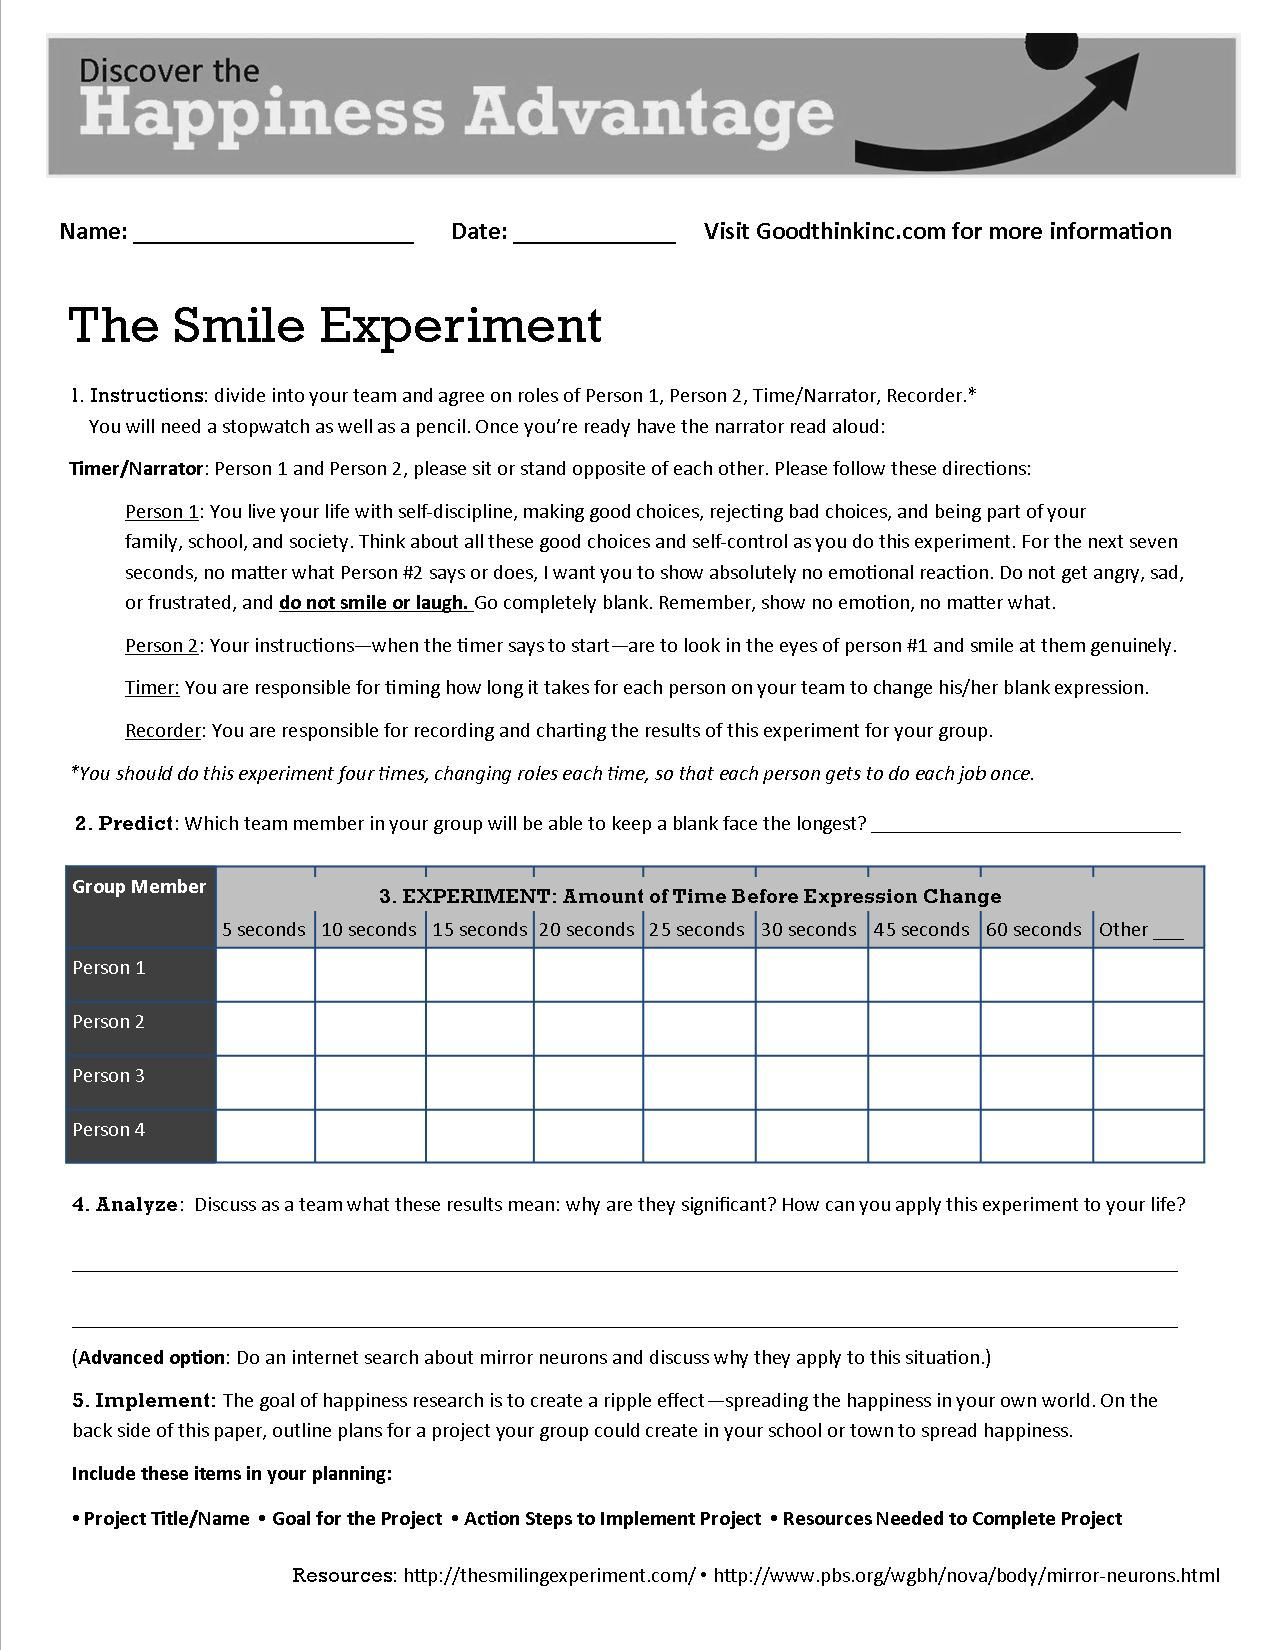 Printables Grief Worksheet therapy and self help worksheets kims counseling corner the smile experiment